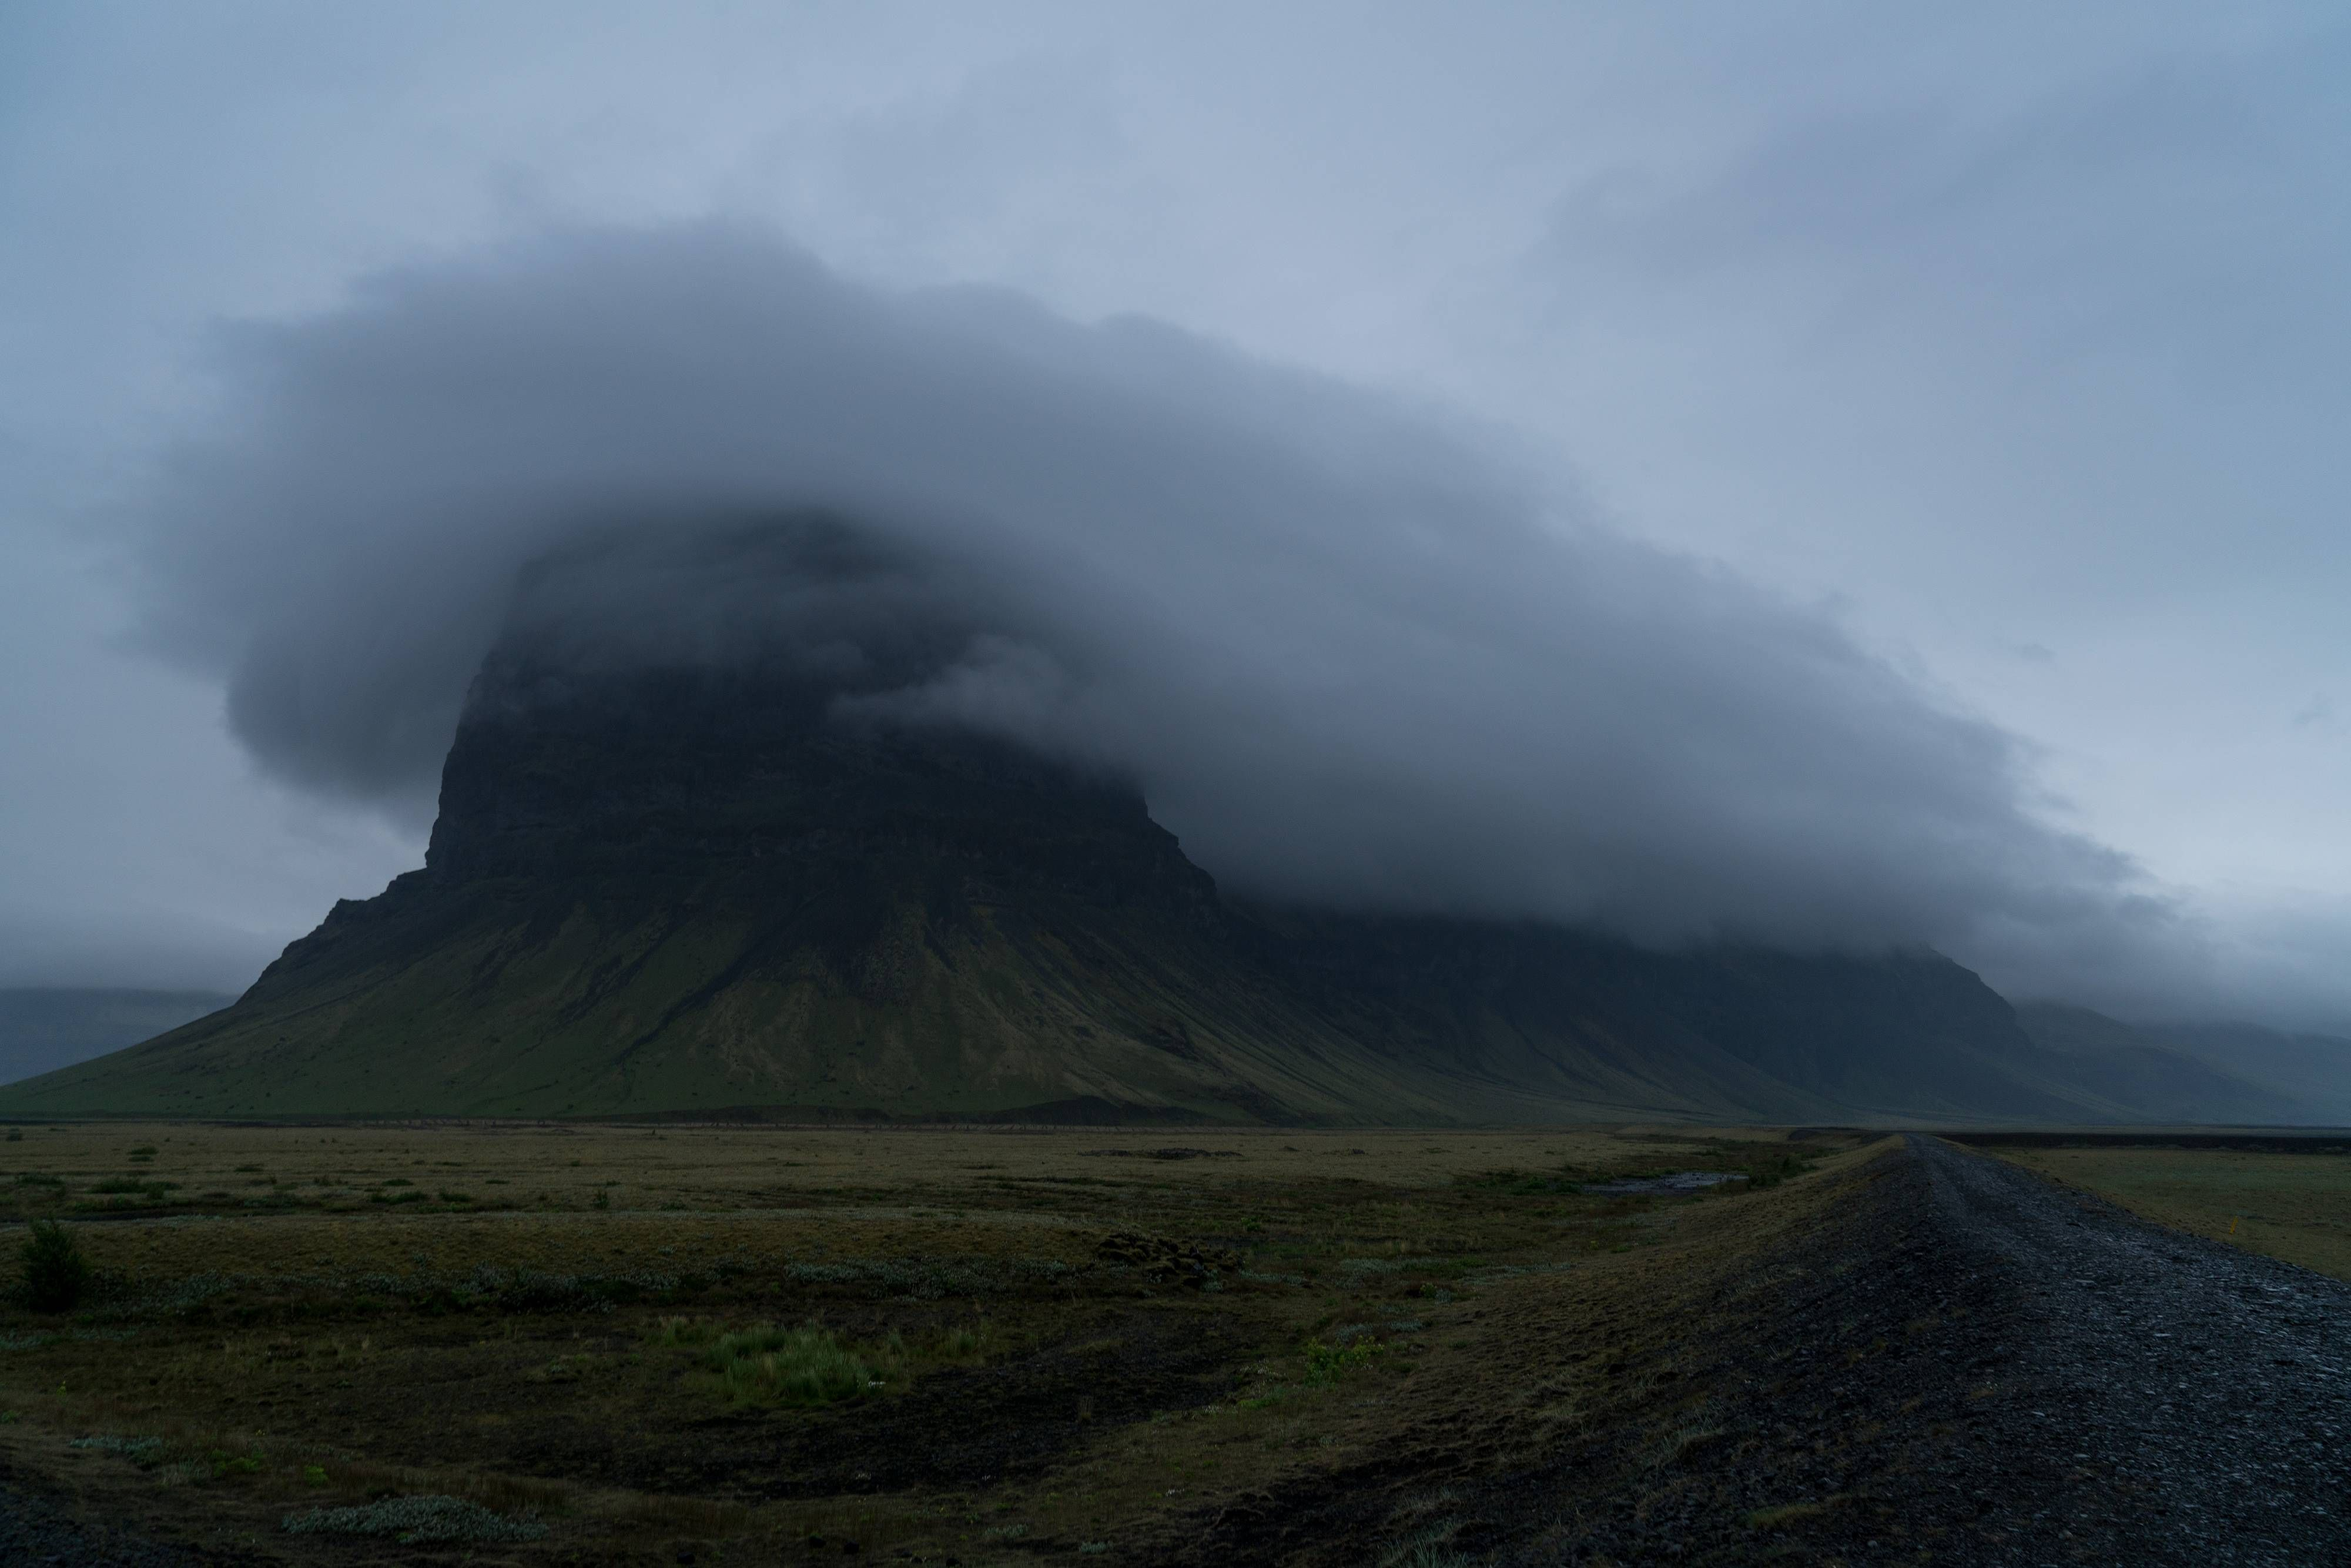 Came across this amazing cloud cover over a mountain during a storm. Þjóðvegur Iceland. [OC][40002668] #reddit